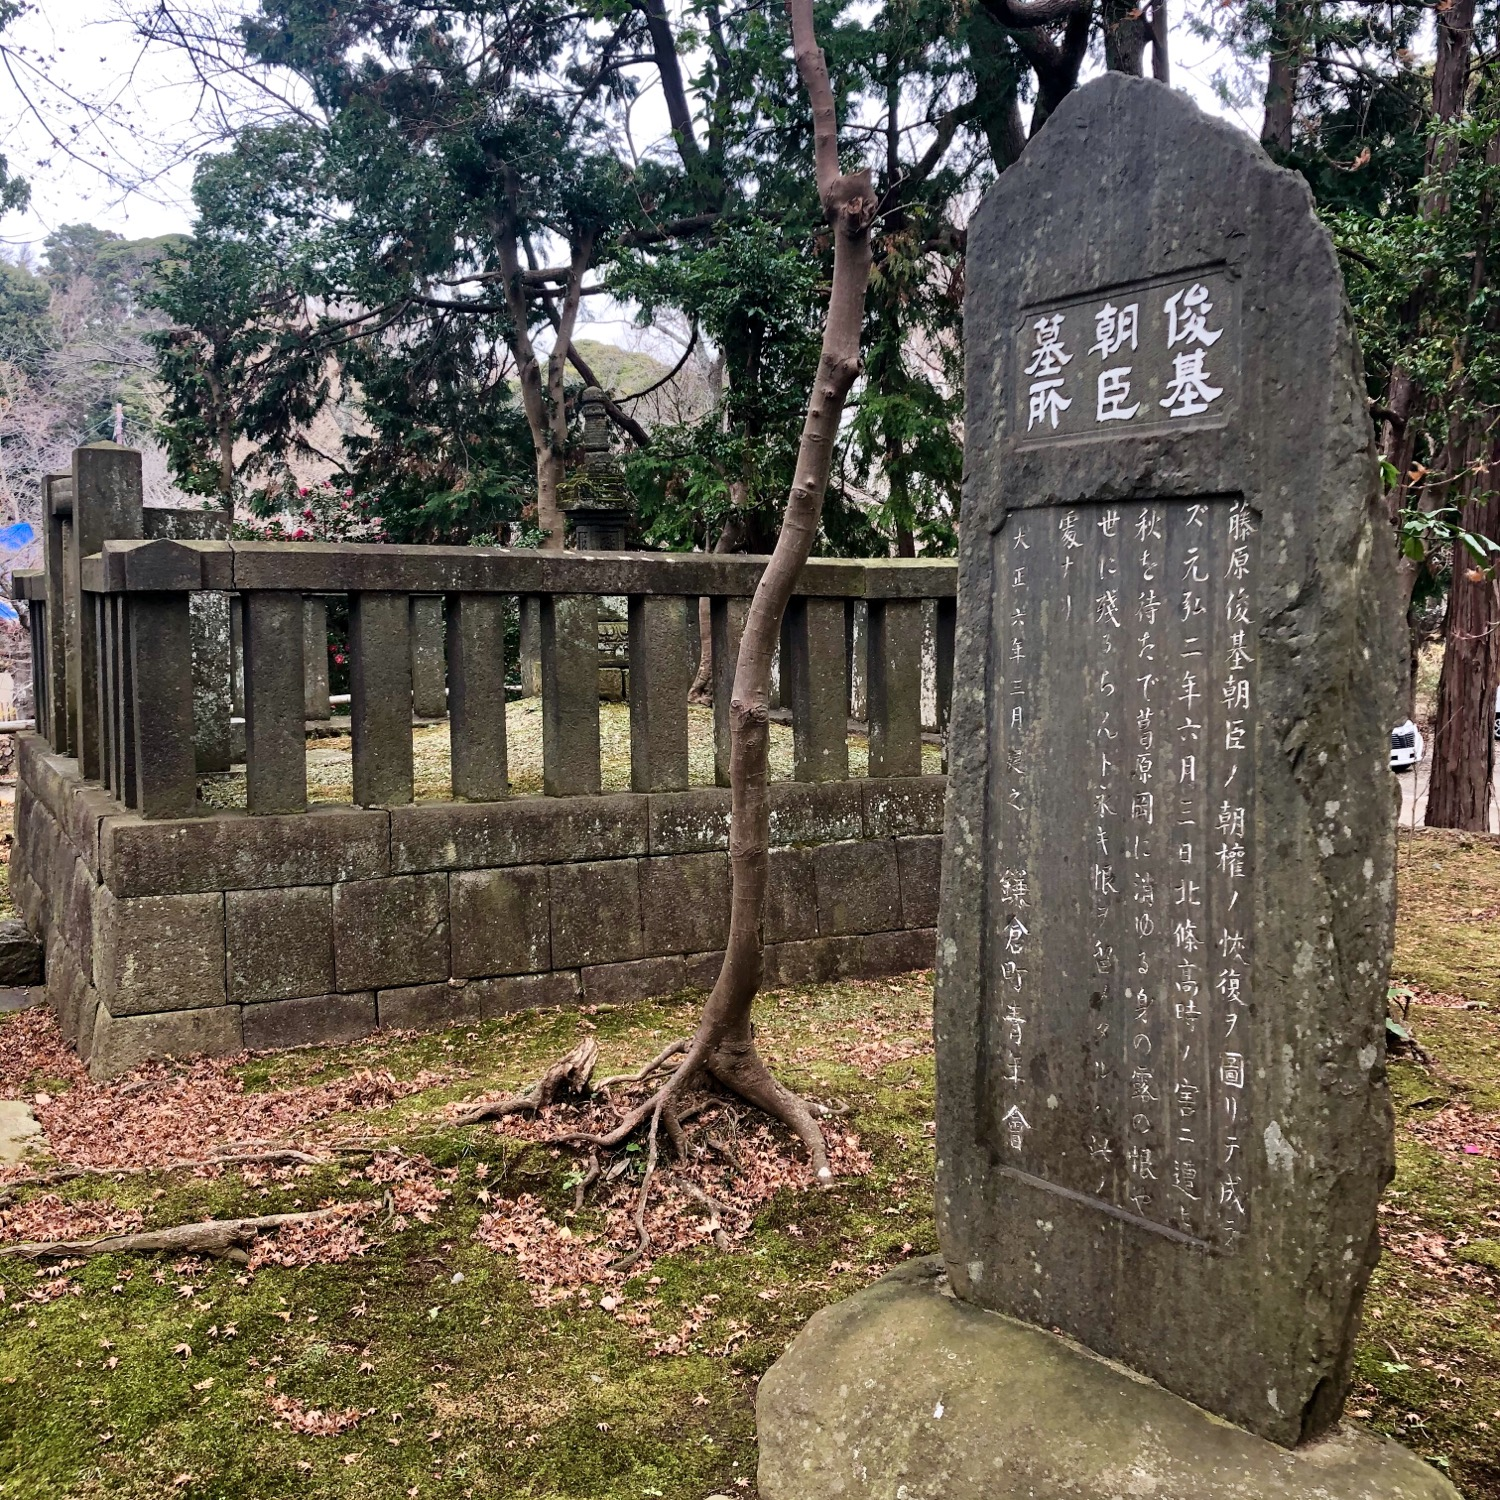 俊基朝臣墓所 The Grave of Hino Toshimoto